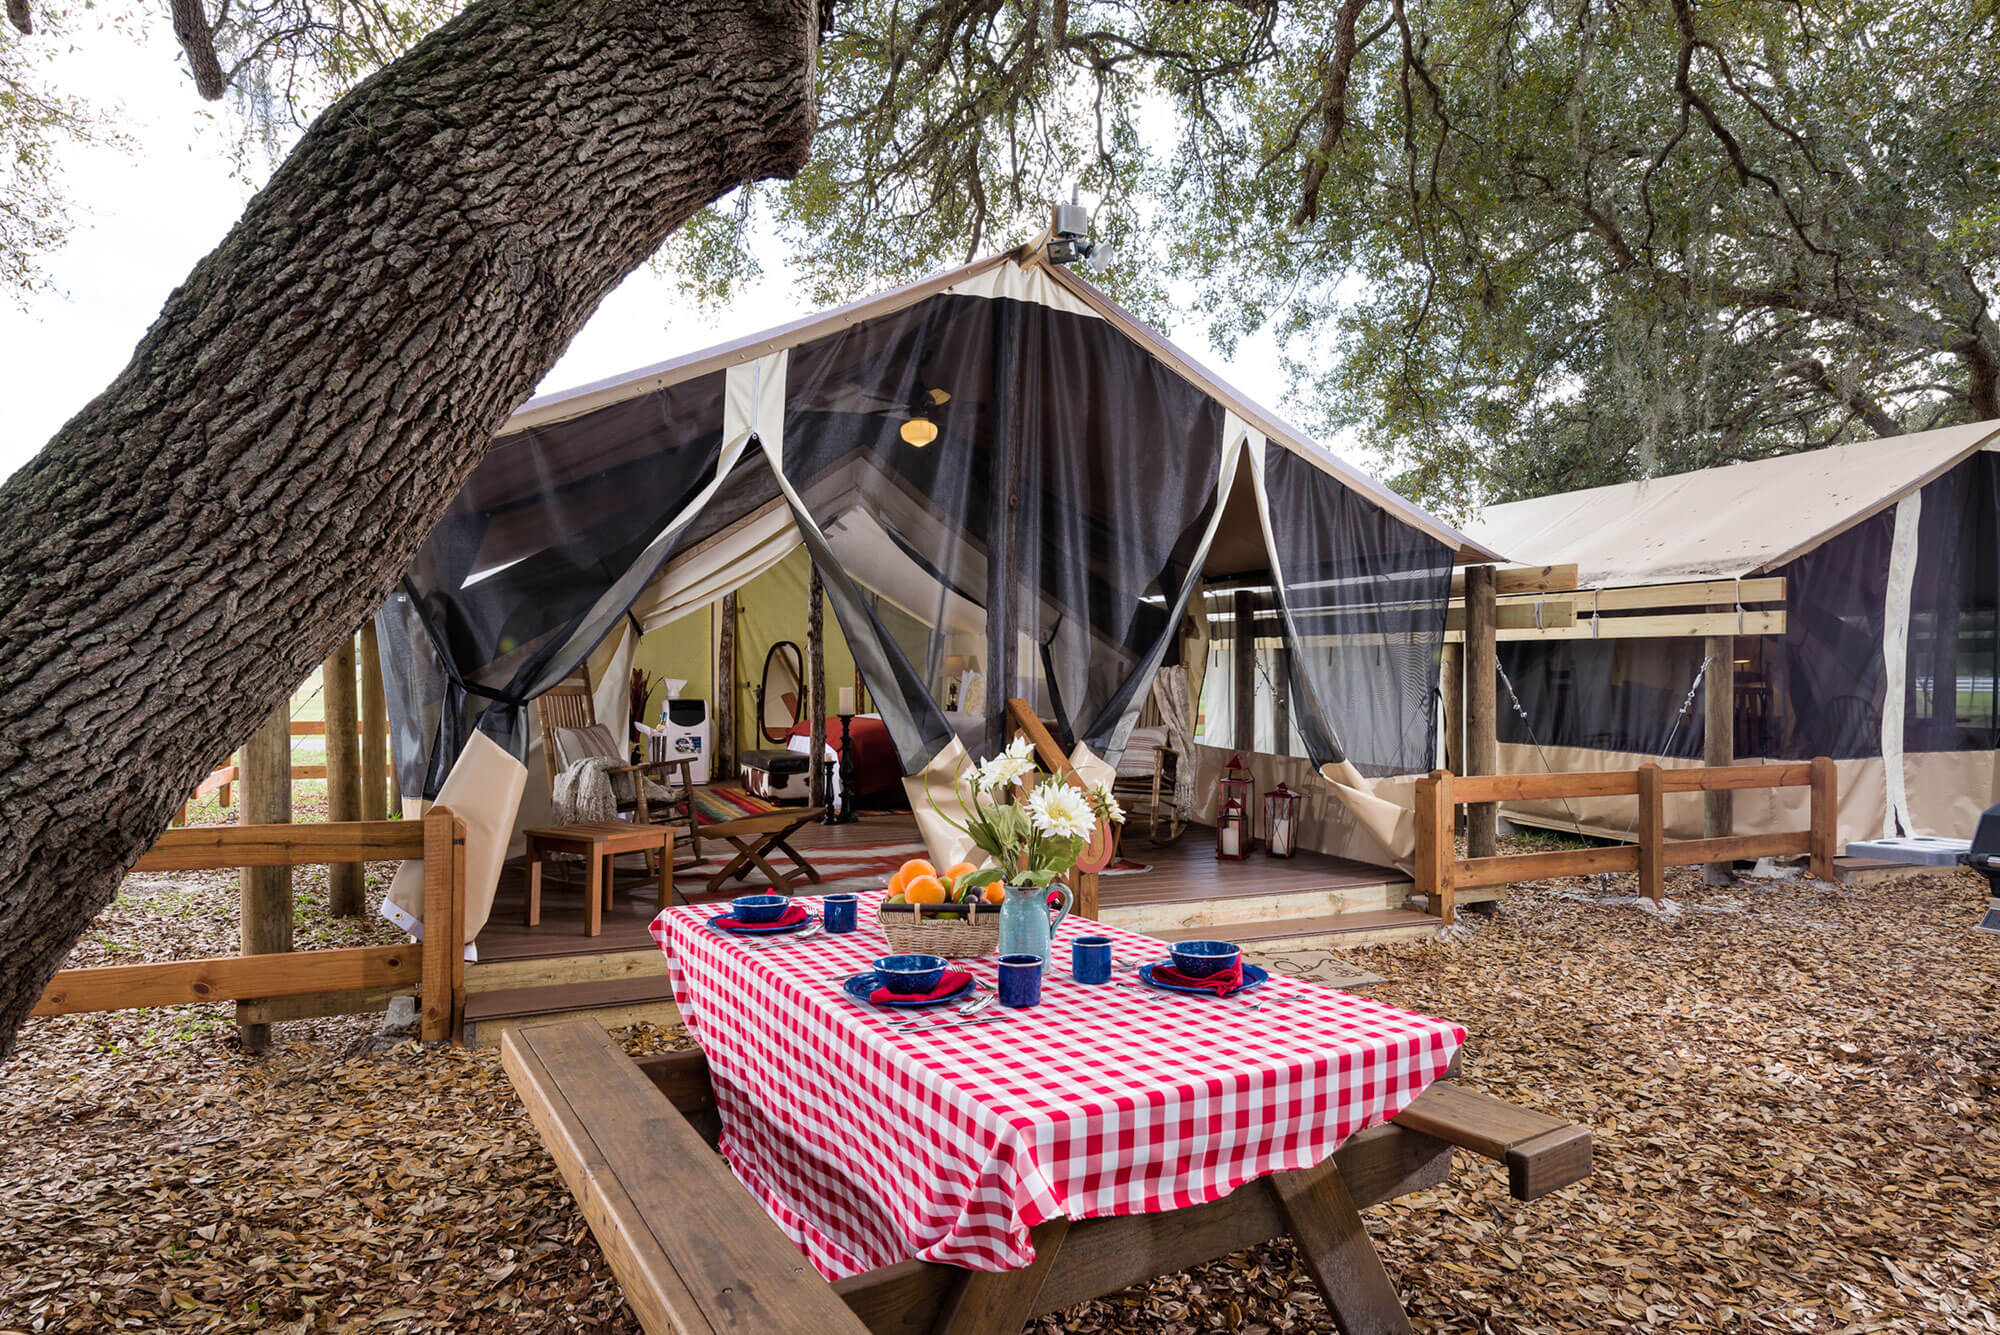 Glamping Tent and common area at Westgate River Ranch Resort & Rodeo near Lake Wales FL